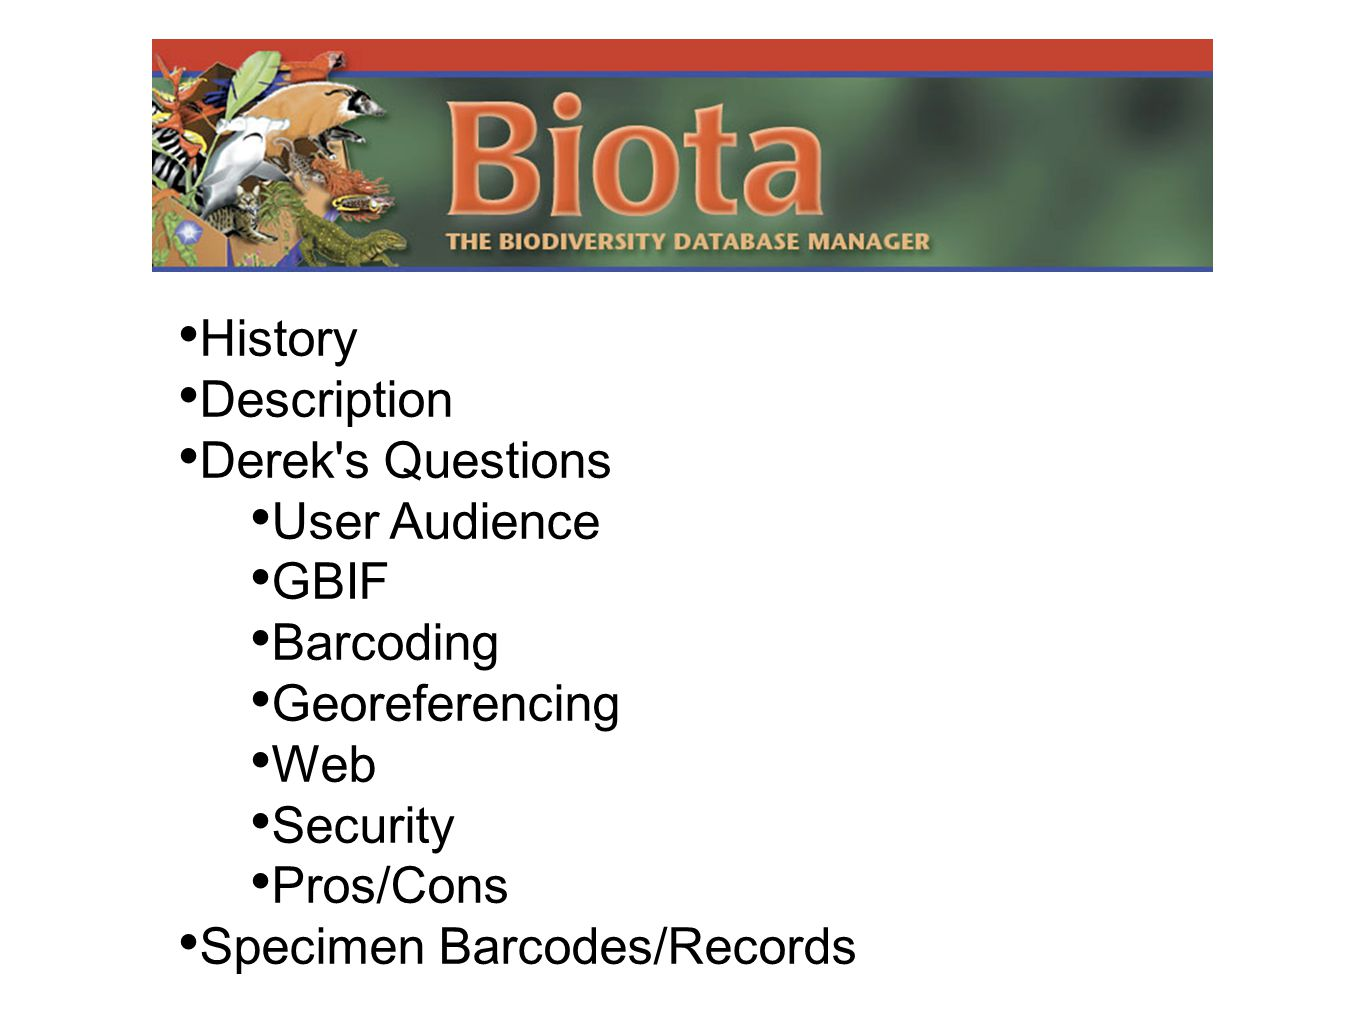 • History • Description • Derek's Questions • User Audience • GBIF • Barcoding • Georeferencing • Web • Security • Pros/Cons • Specimen Barcodes/Recor